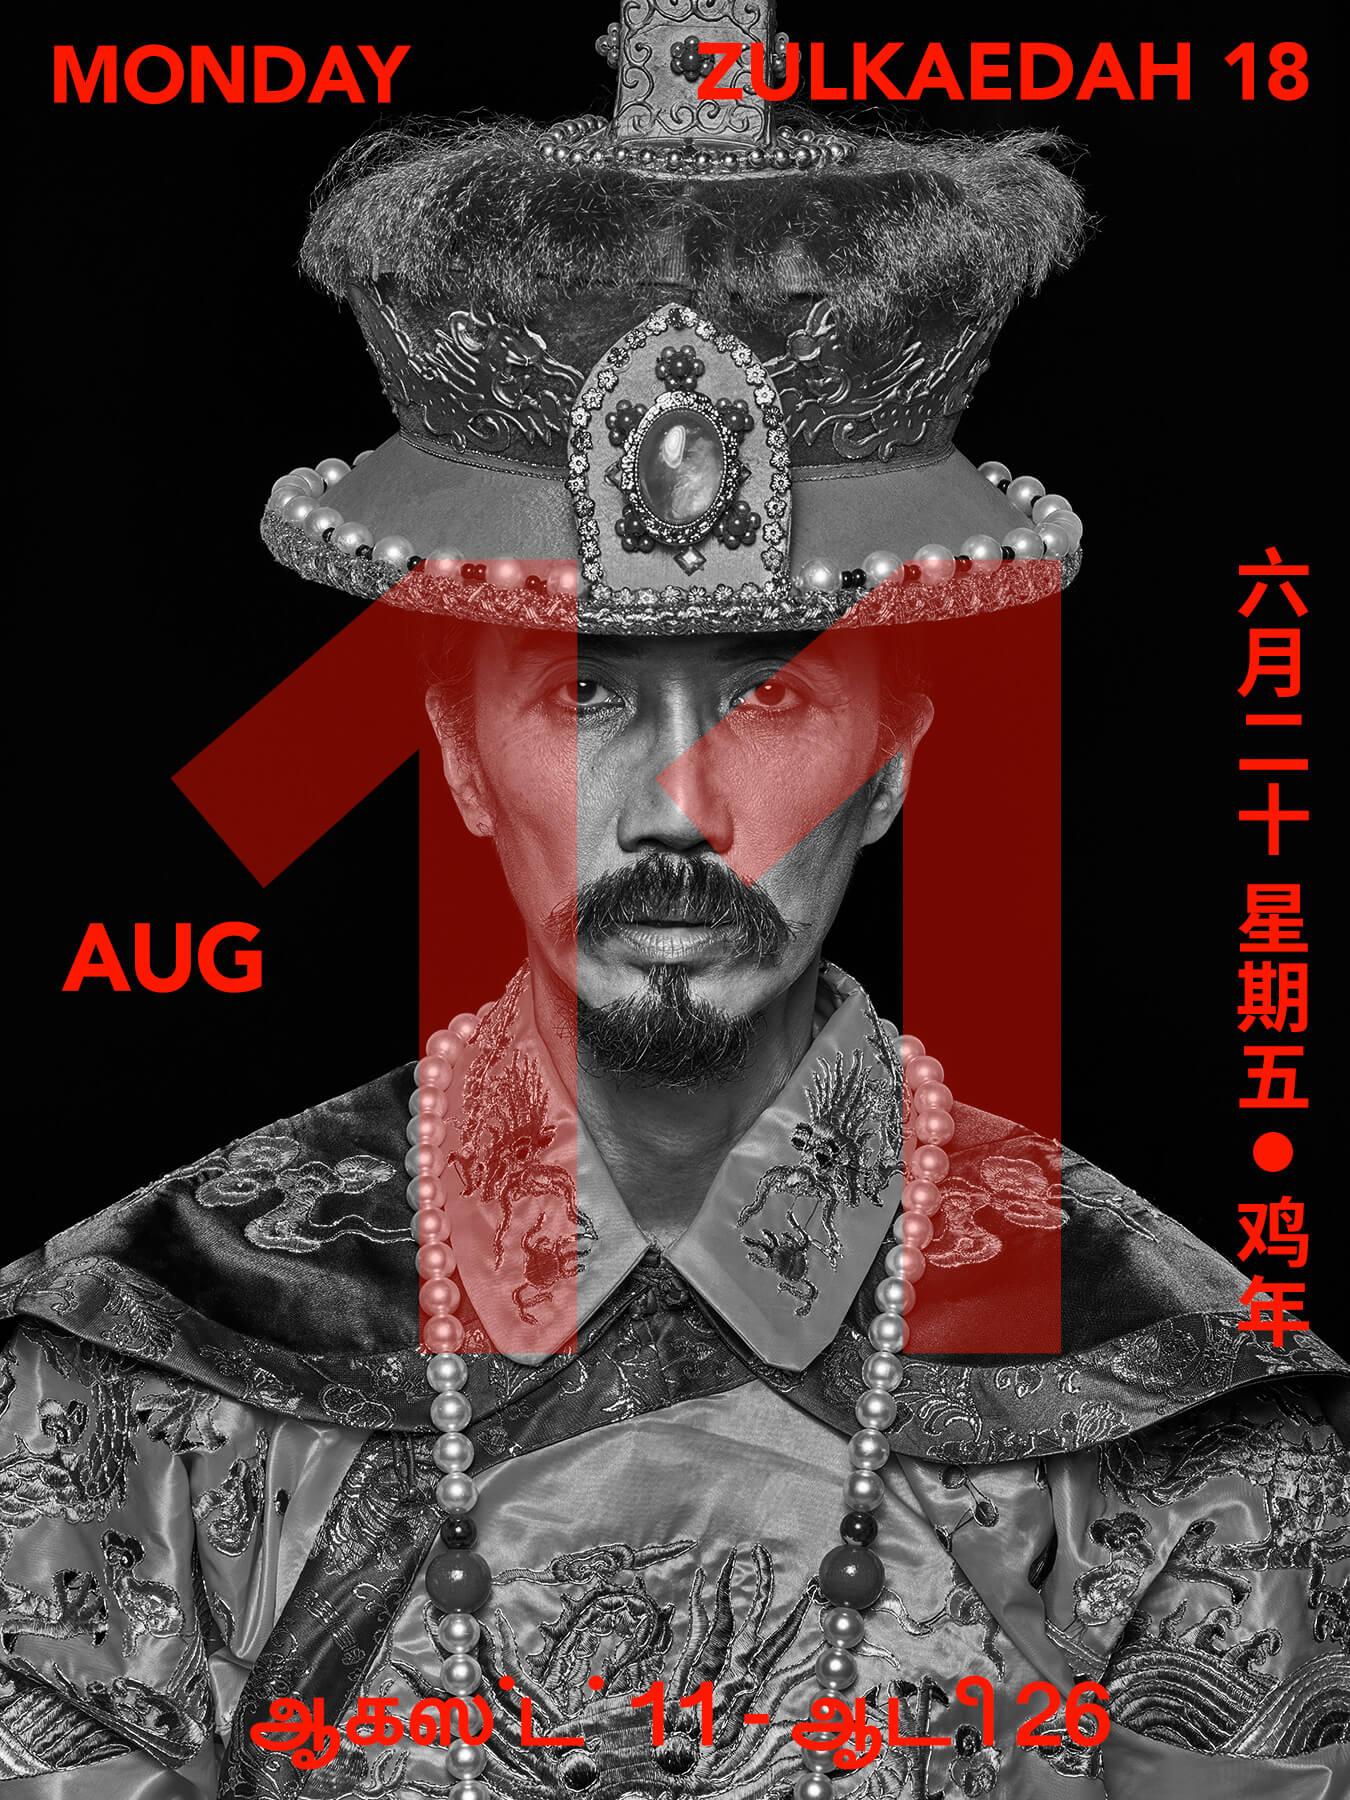 11 Aug 2017 Derong is in full emperor costume, with red eyelids and looking ill